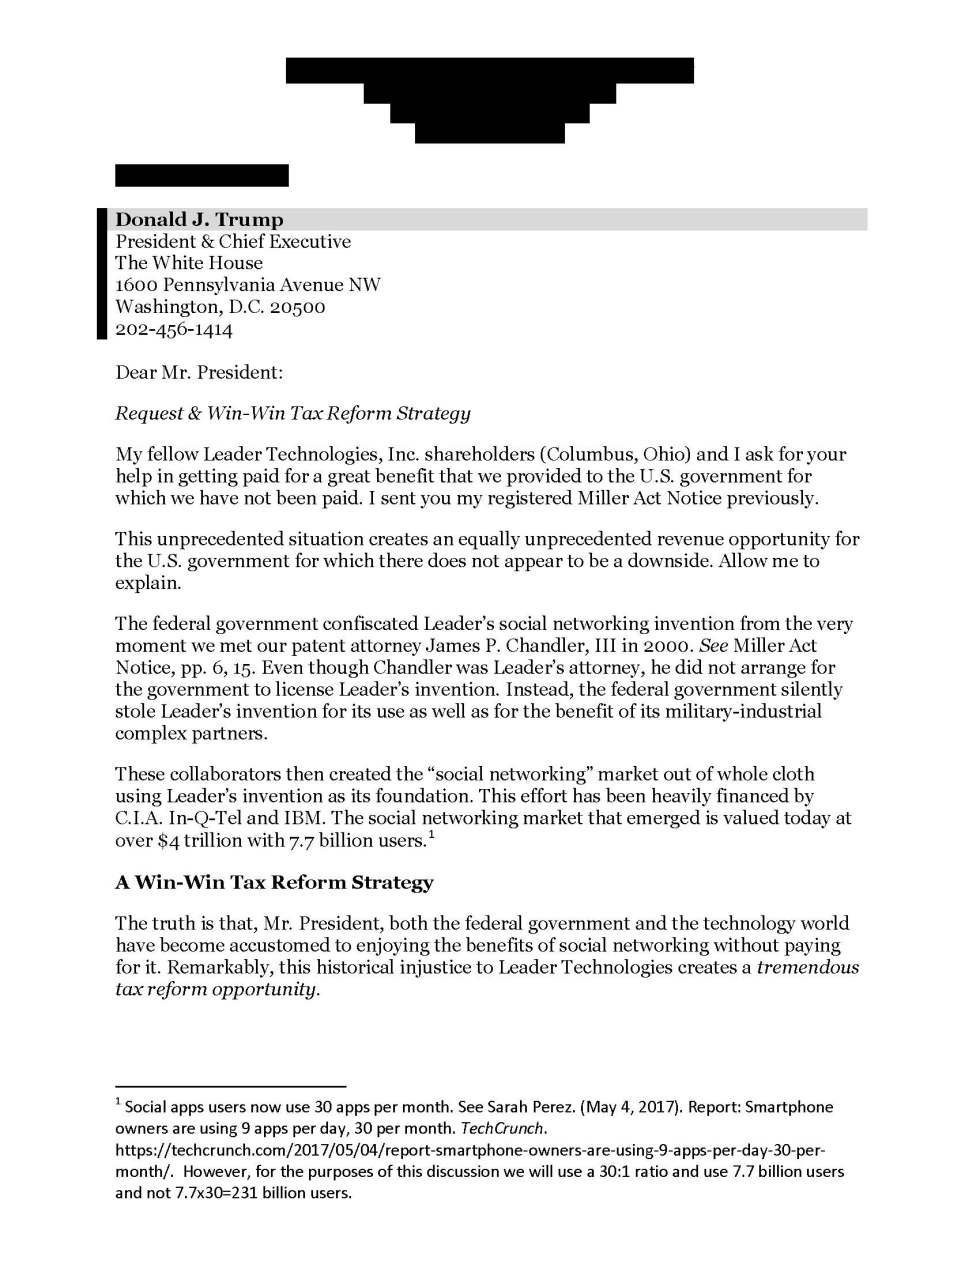 Leader-Technologies-Tier-II-Miller-Act-Notice-cover-letter-to-Donald-Trump-Sep-29-2017_Page_1